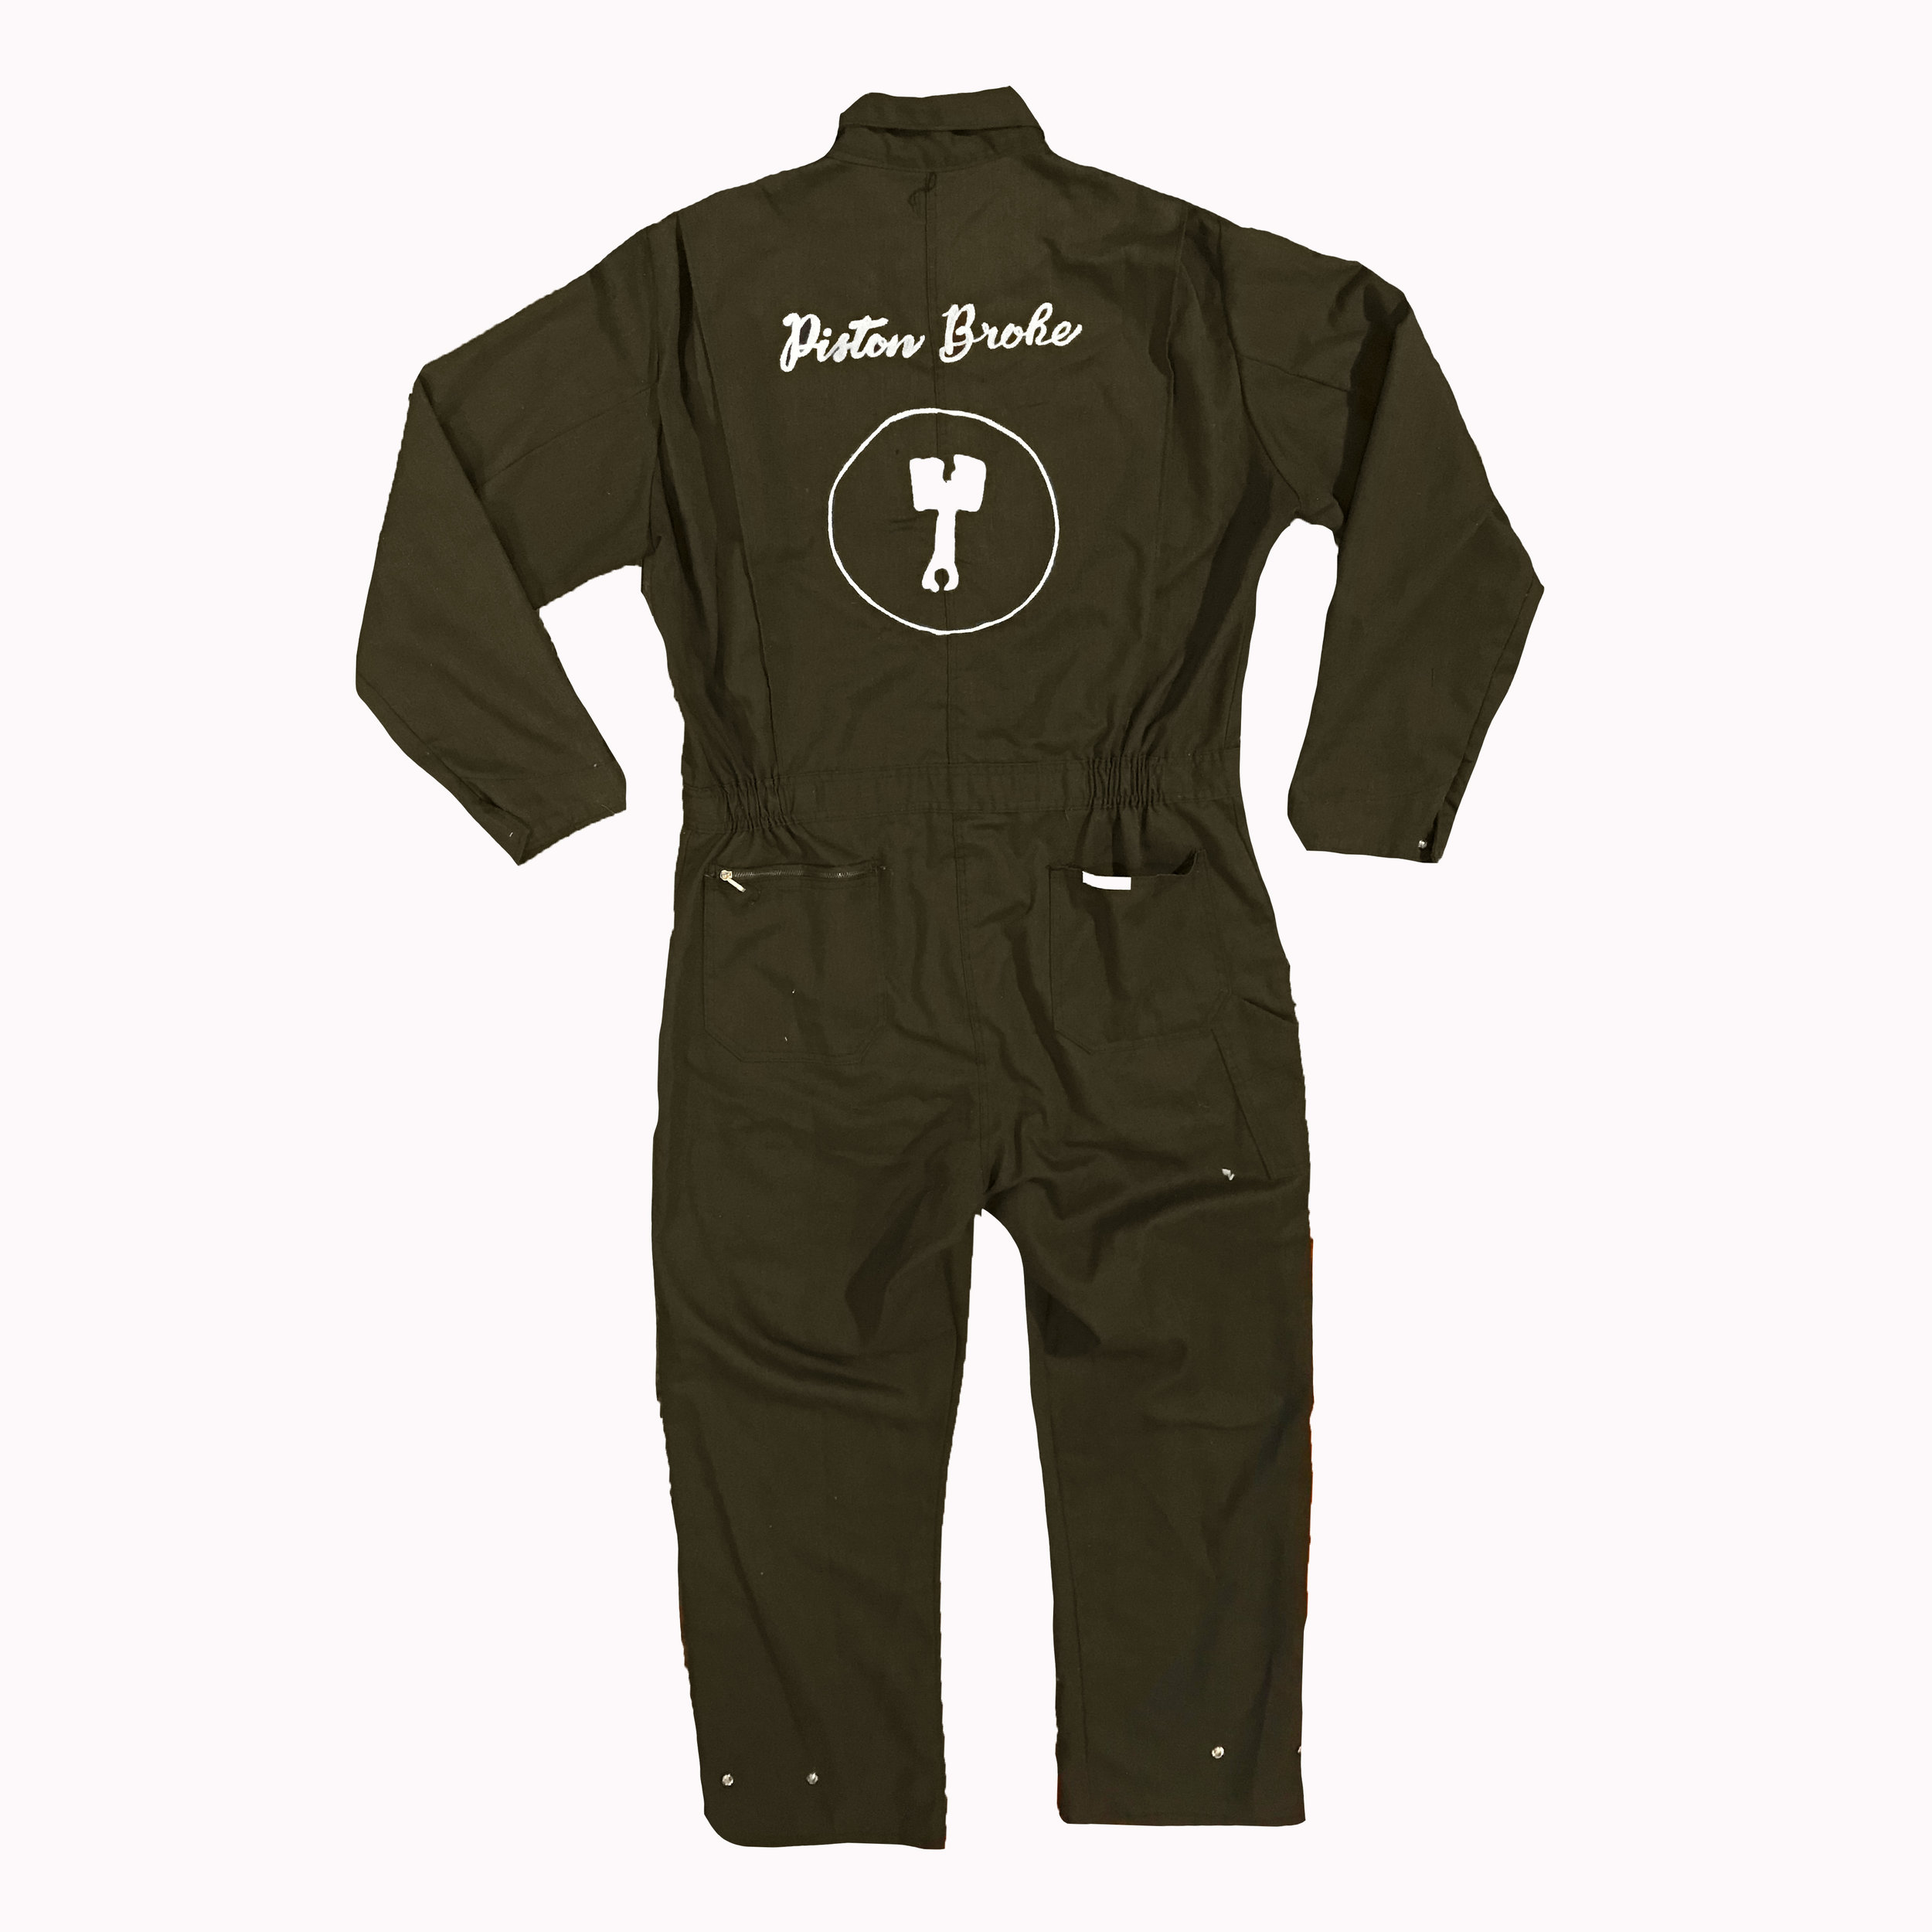 Luke Jumpsuit Full copy Square.jpg